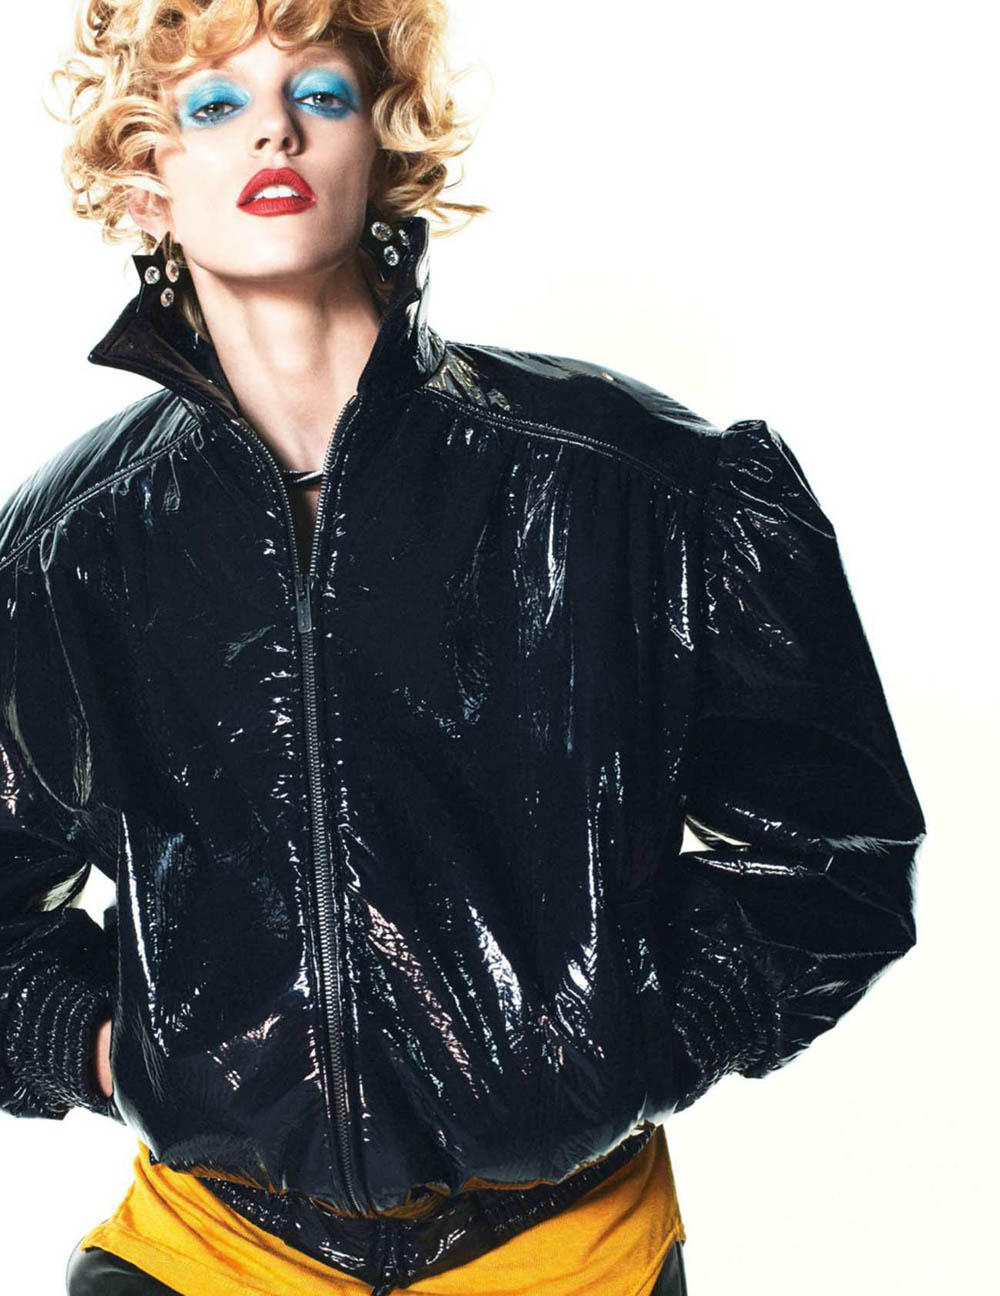 Anja Rubik by David Sims for Vogue Paris October 2018